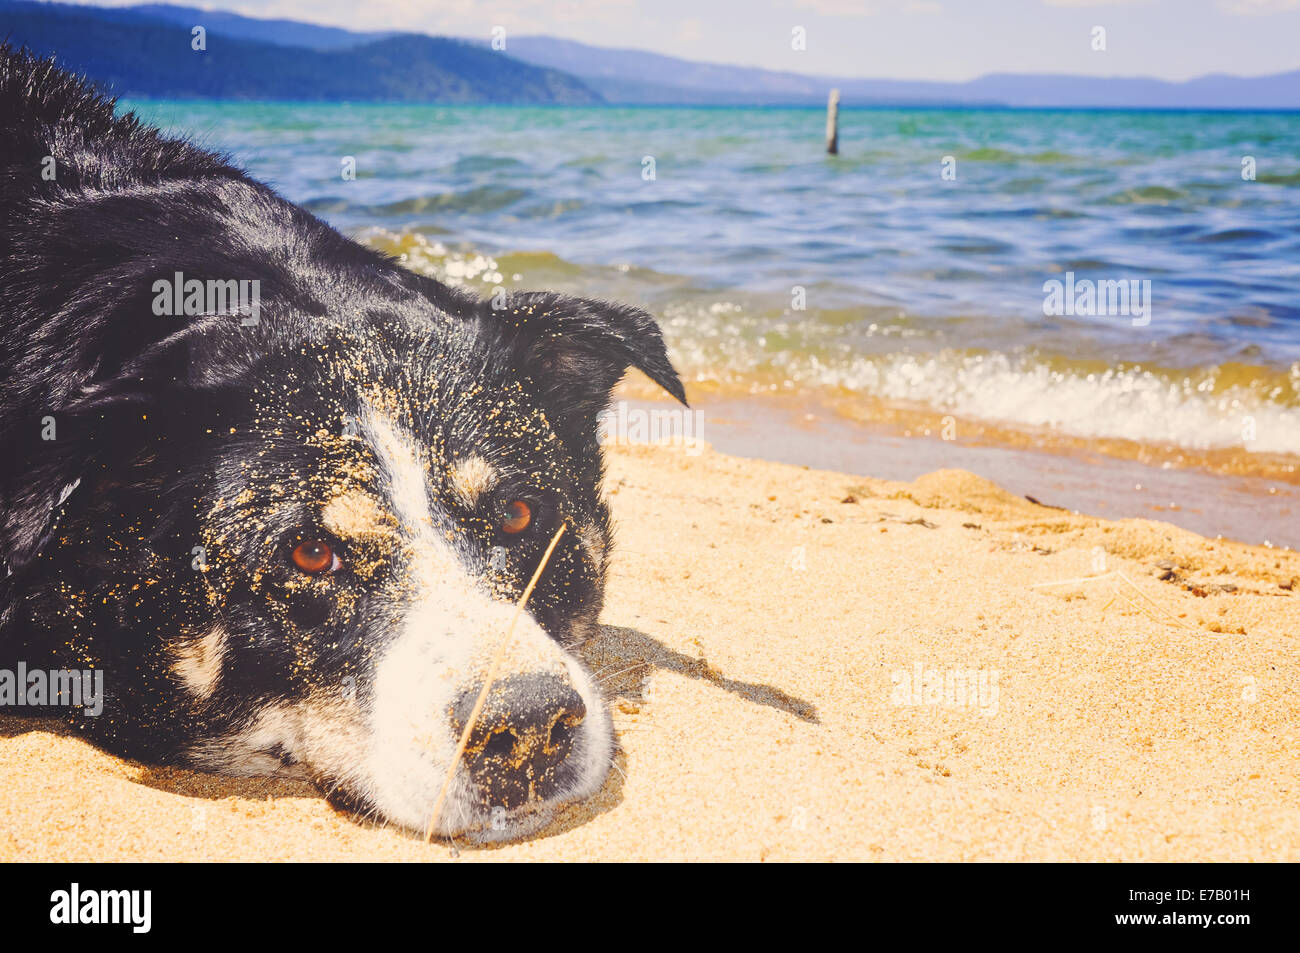 A happy family dog rests on the Sandy shores of blue Lake Tahoe dirty from the sand having fun in the sun. - Stock Image